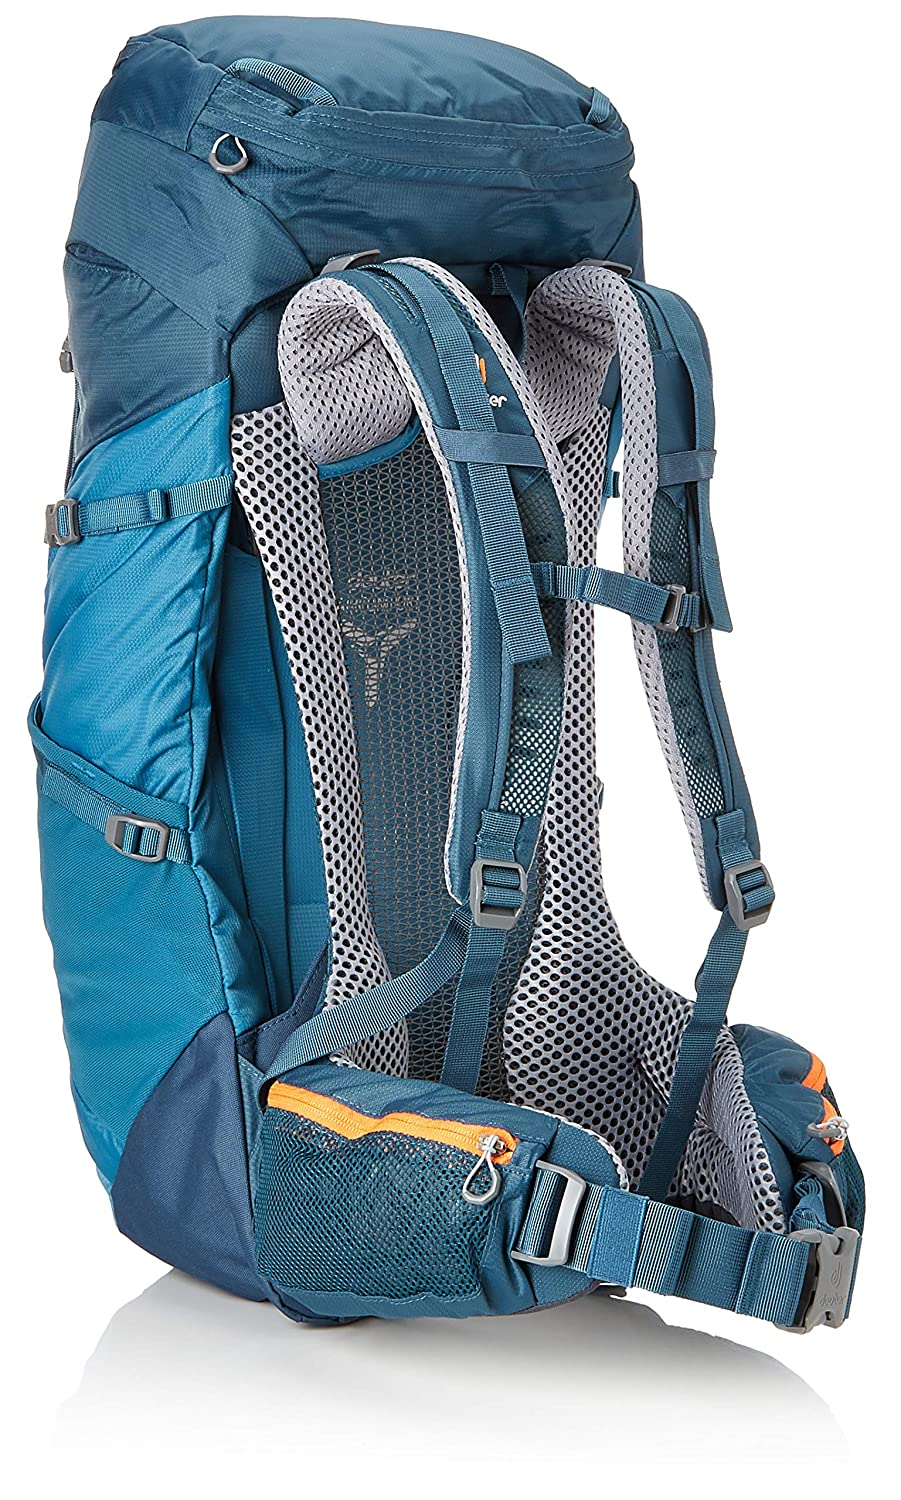 Deuter Futura 30 Hiking Backpack